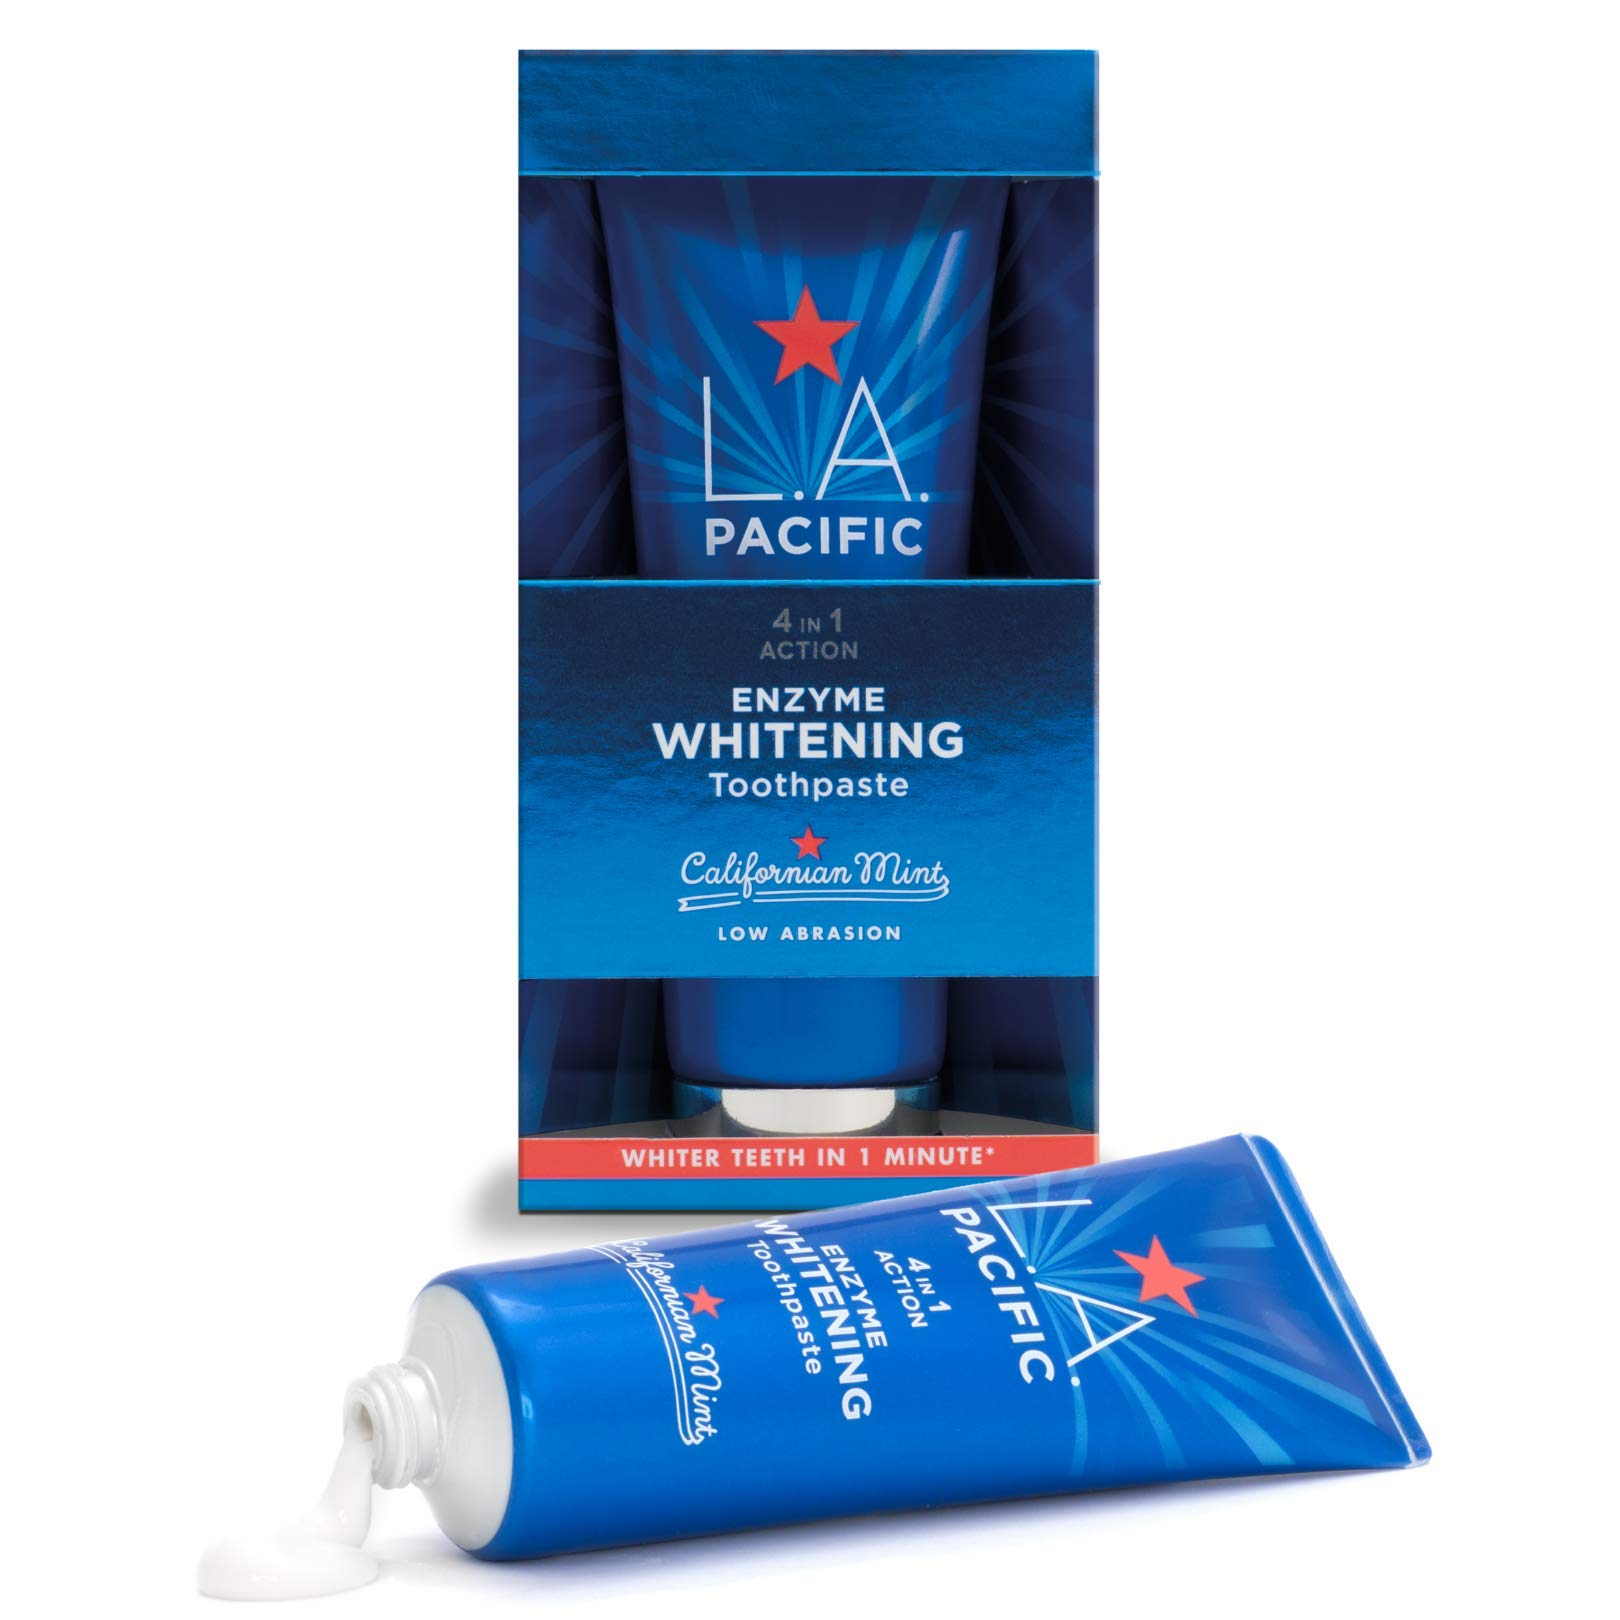 L.A.PACIFIC Enzyme Teeth Whitening Toothpaste - Clinically Proven To Whiten Teeth in 60 seconds - Californian Mint Flavour Will Give Your Teeth That Instant Clean Feel - No Harsh Chemicals Or Abrasion